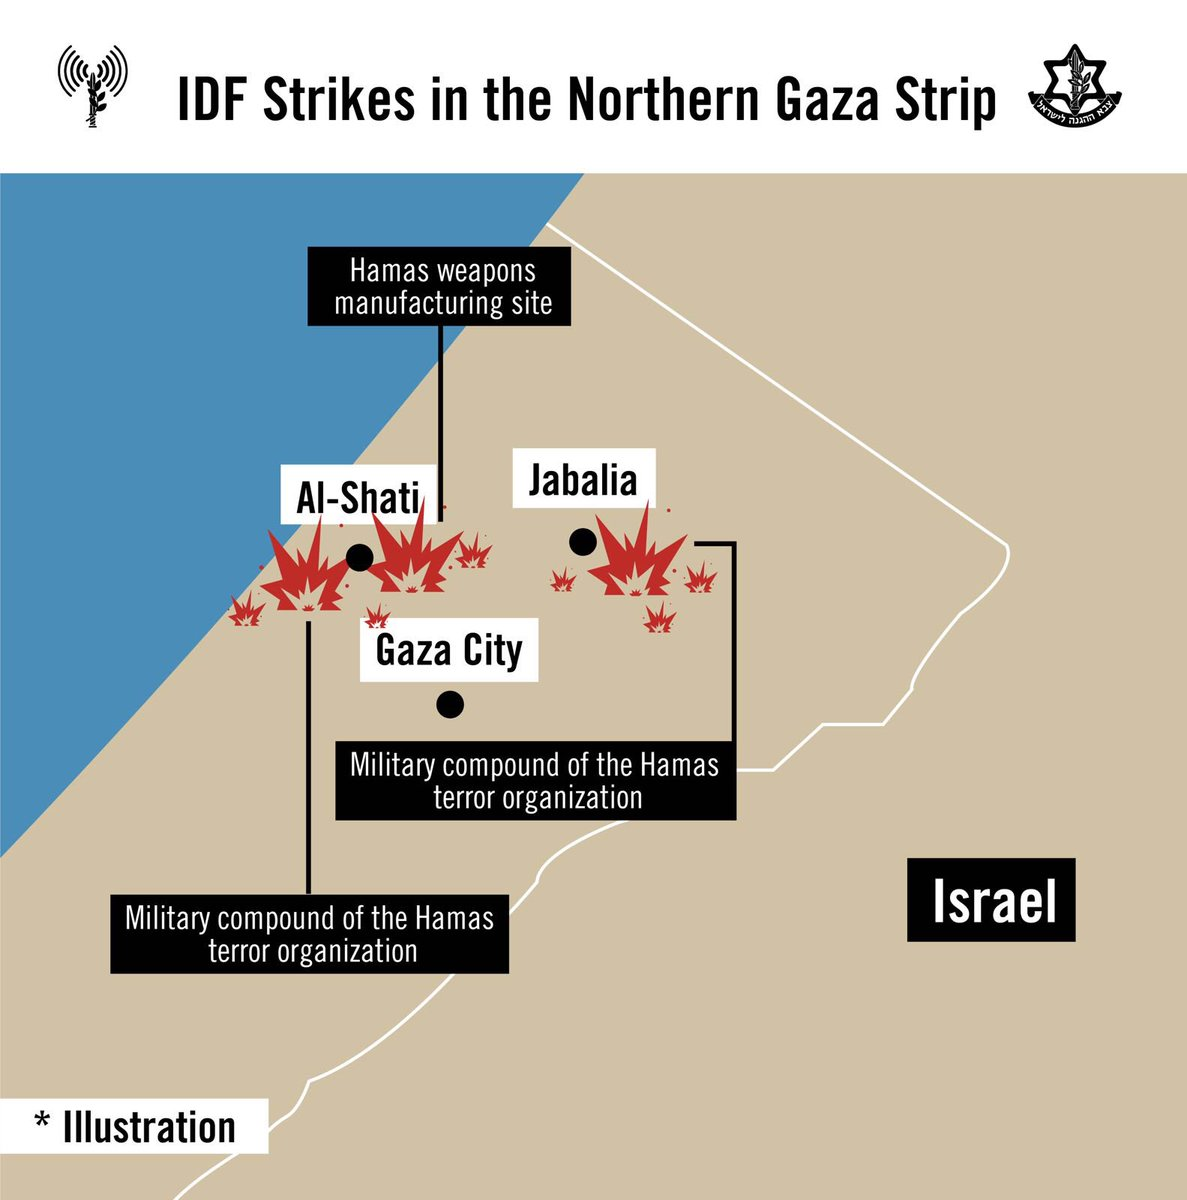 Israeli Warplanes Strike Alleged Hamas Targets In Gaza Strip ... on palestinian people, sea of galilee, oman map, tel aviv, plateau of iran map, yasser arafat, himalayas map, palestinian territories, east jerusalem, bangladesh map, greece map, united kingdom map, world map, jordan river, morocco map, middle east political map, west bank, six-day war, western sahara map, indonesia map, sinai peninsula map, ethiopia map, iberian peninsula map, yom kippur war, austria map, golan heights, iudaea province map, philippines map, jerusalem map, oslo accords, yemen map, sinai peninsula, western wall, portugal map,